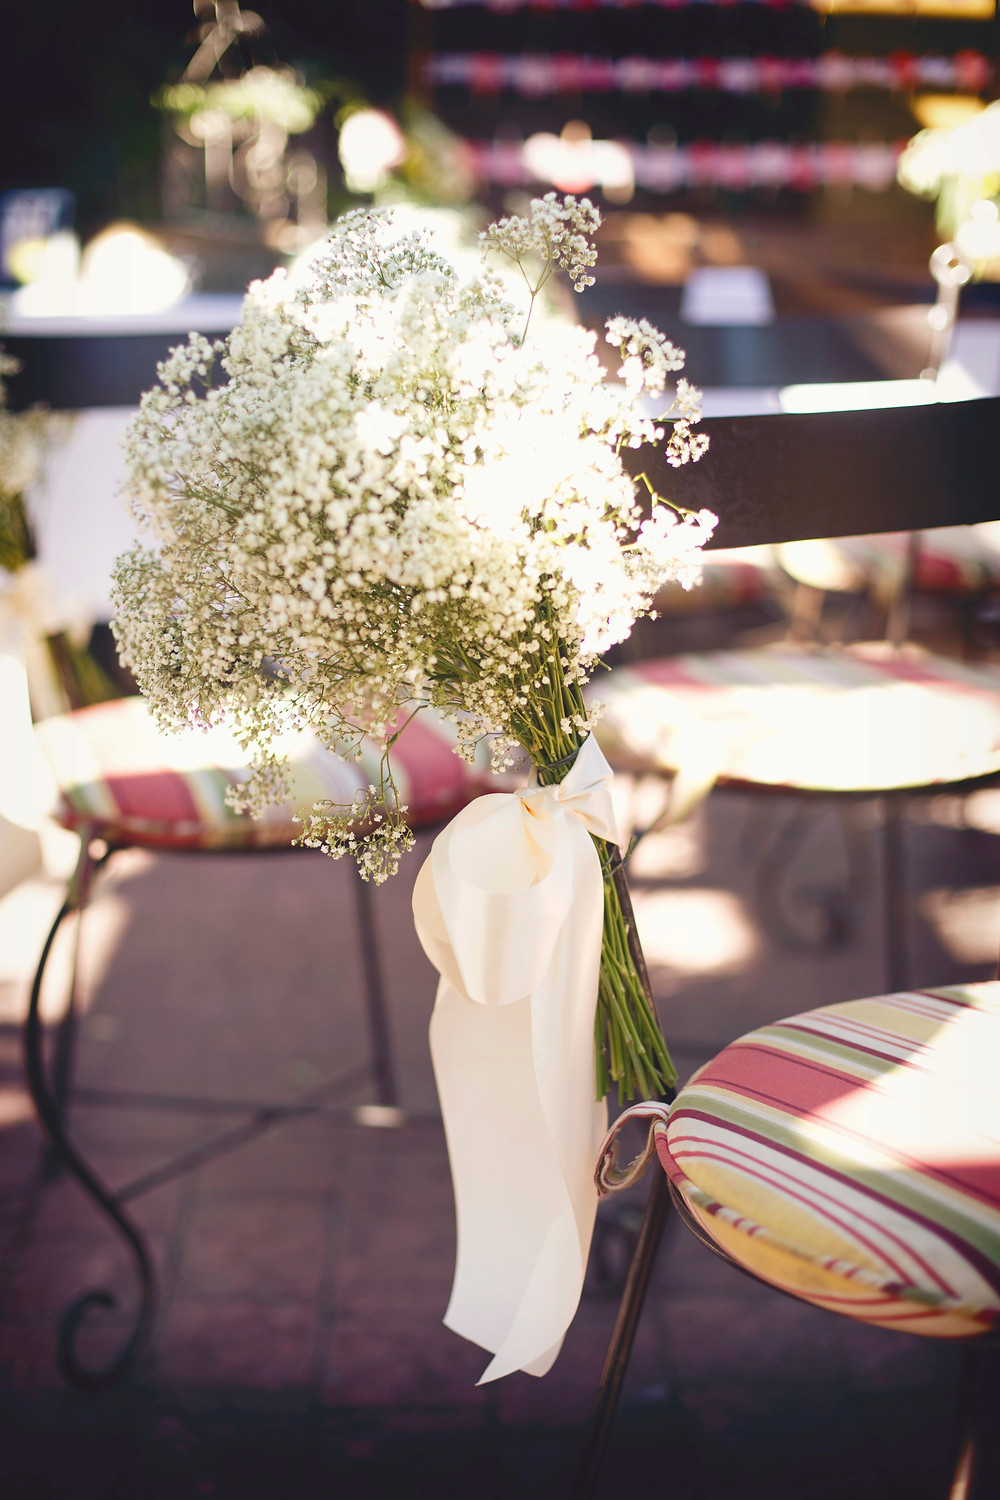 A large bouquet of babys breath tied to a chair with a white satin ribbon at the aisle of an Italian inspired wedding.